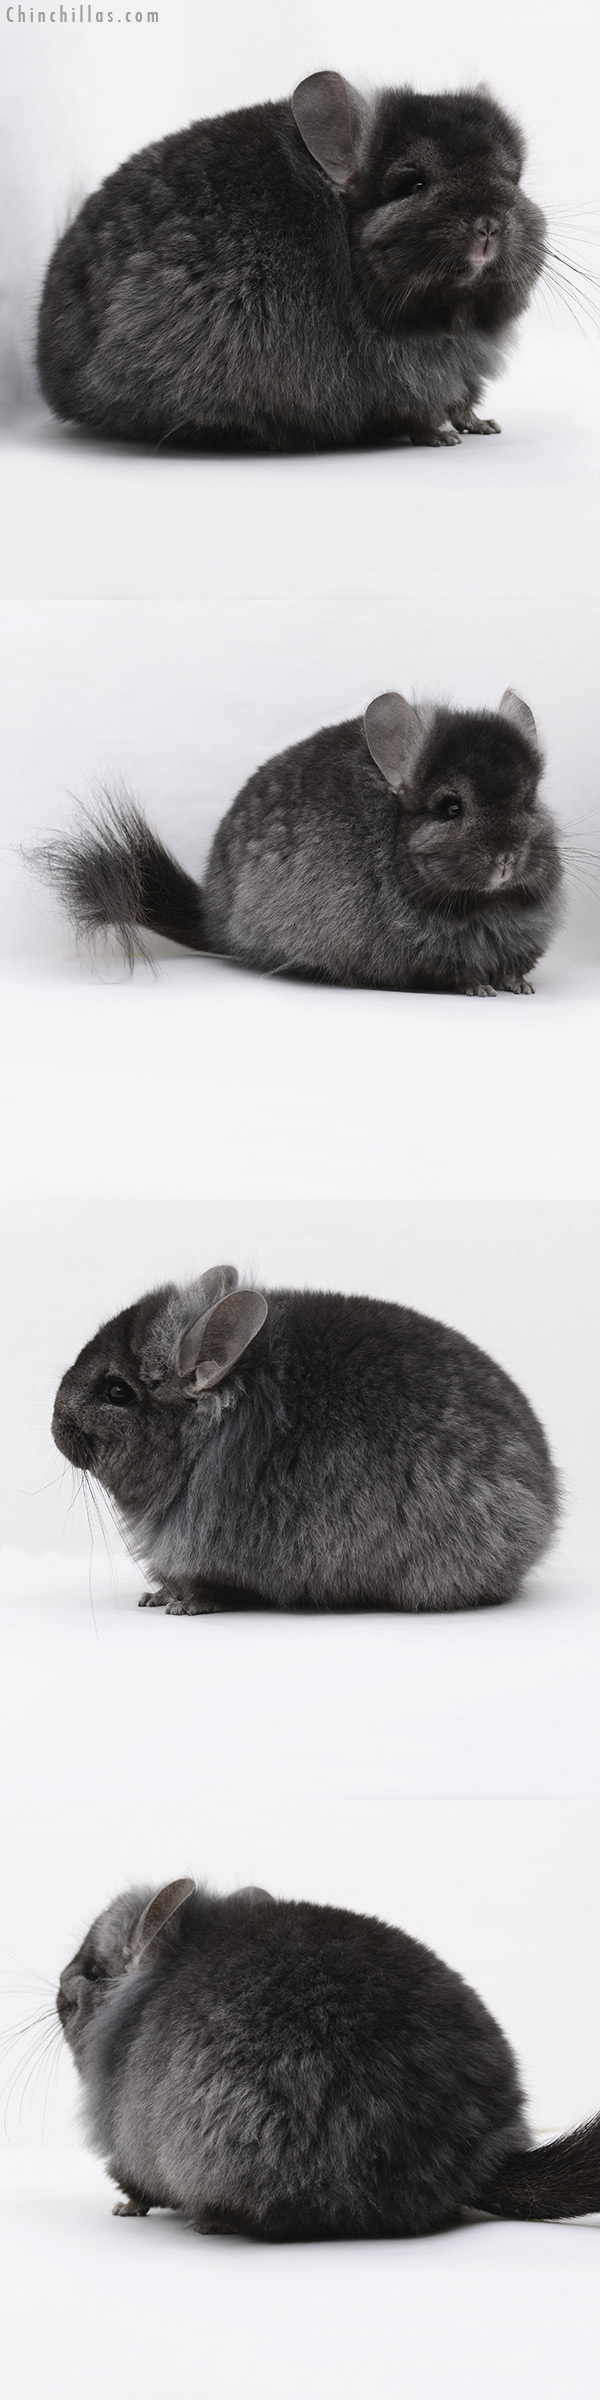 20238 Ebony ( Locken Carrier ) CCCU Royal Persian Angora Female Chinchilla